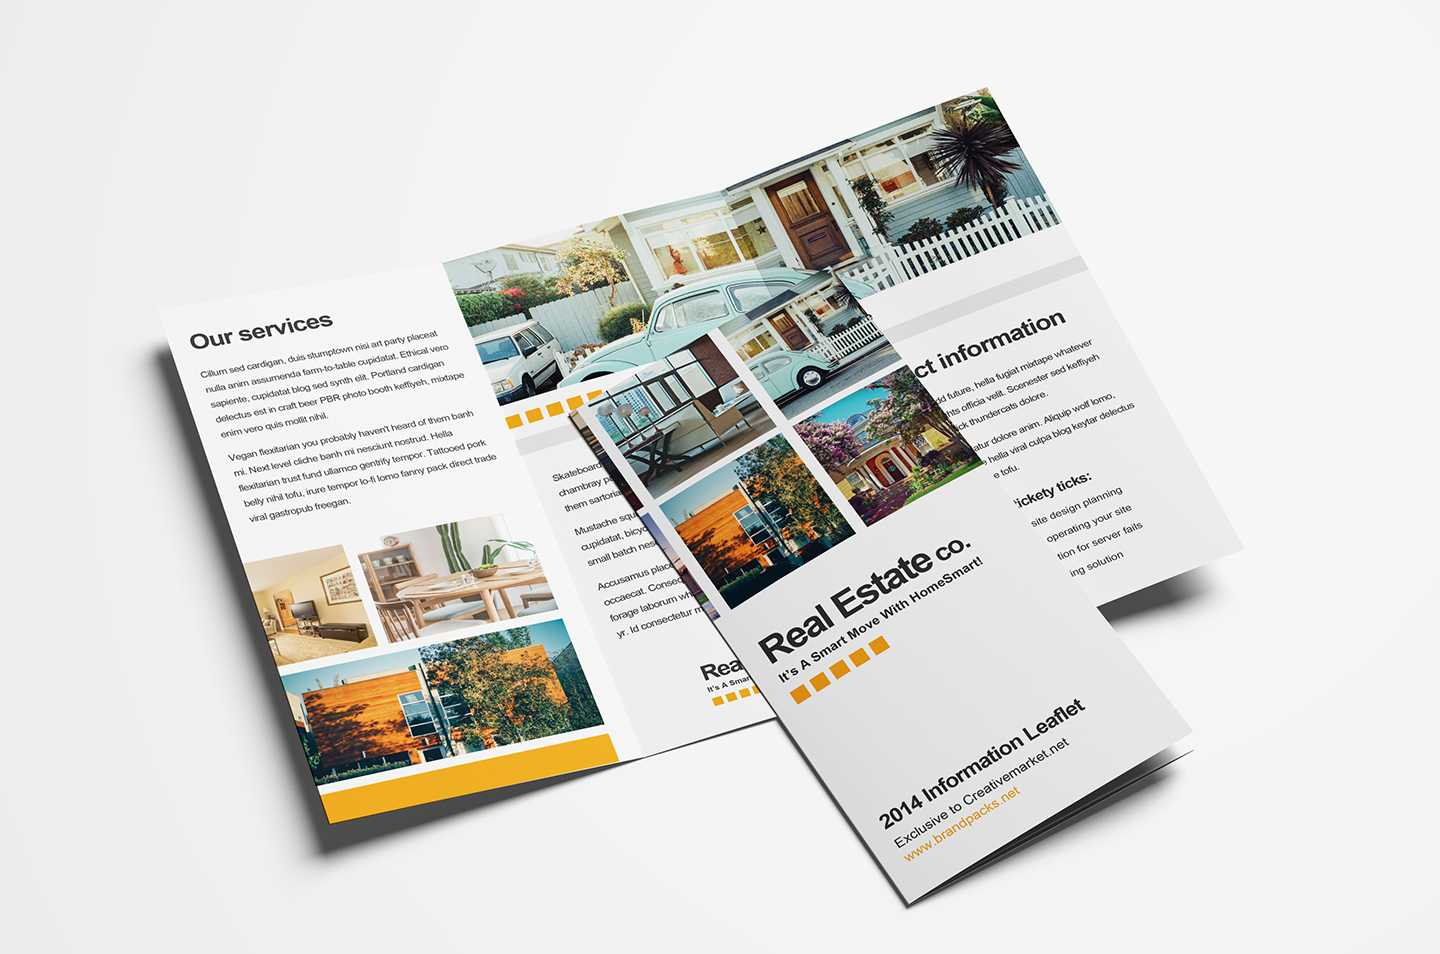 Fancy Brochure Templates - Colona.rsd7 Pertaining To Fancy Brochure Templates